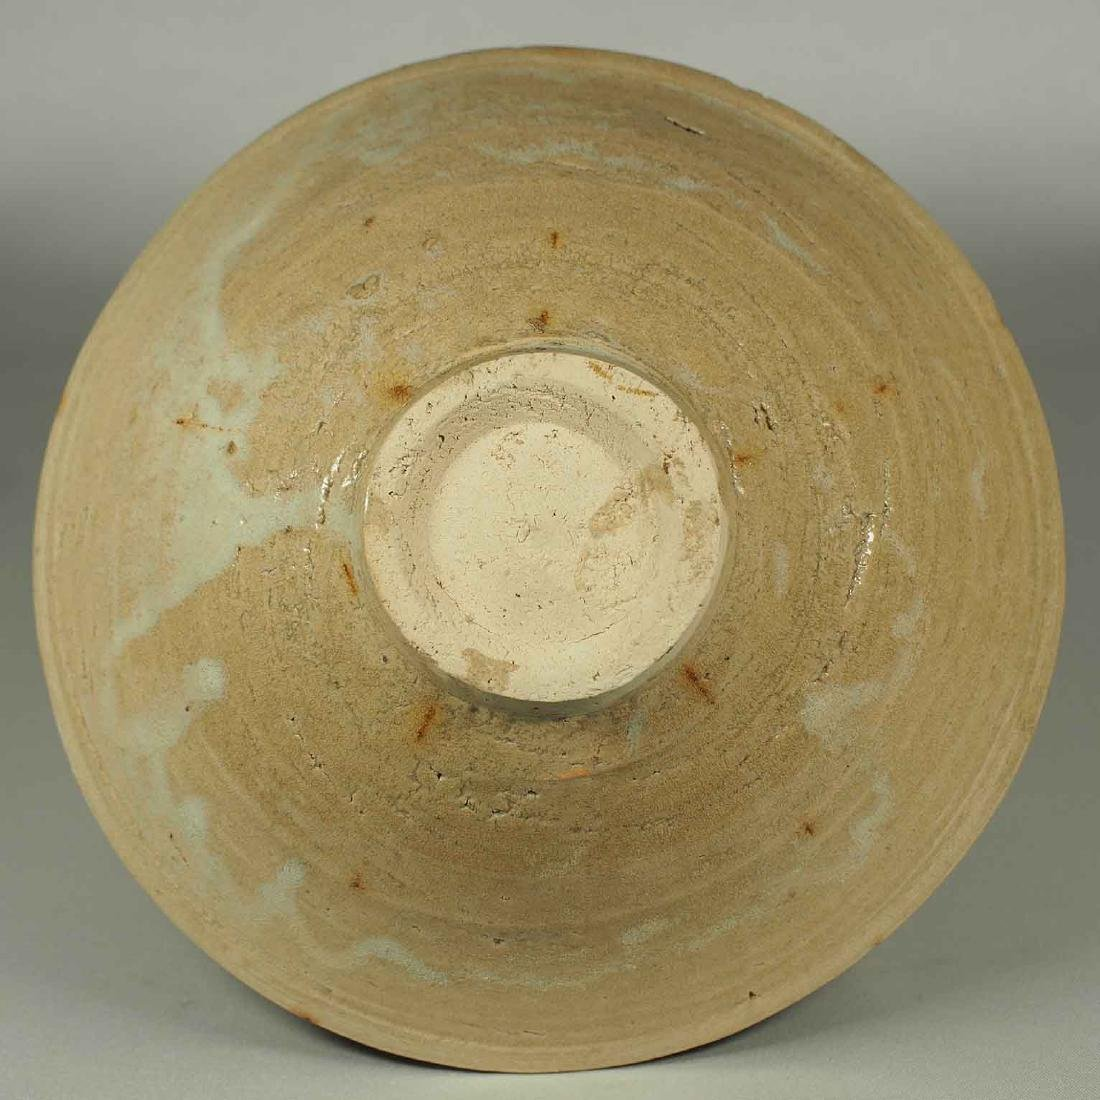 Yue Celadon Bowl with Incised Design, Song Dynasty - 6